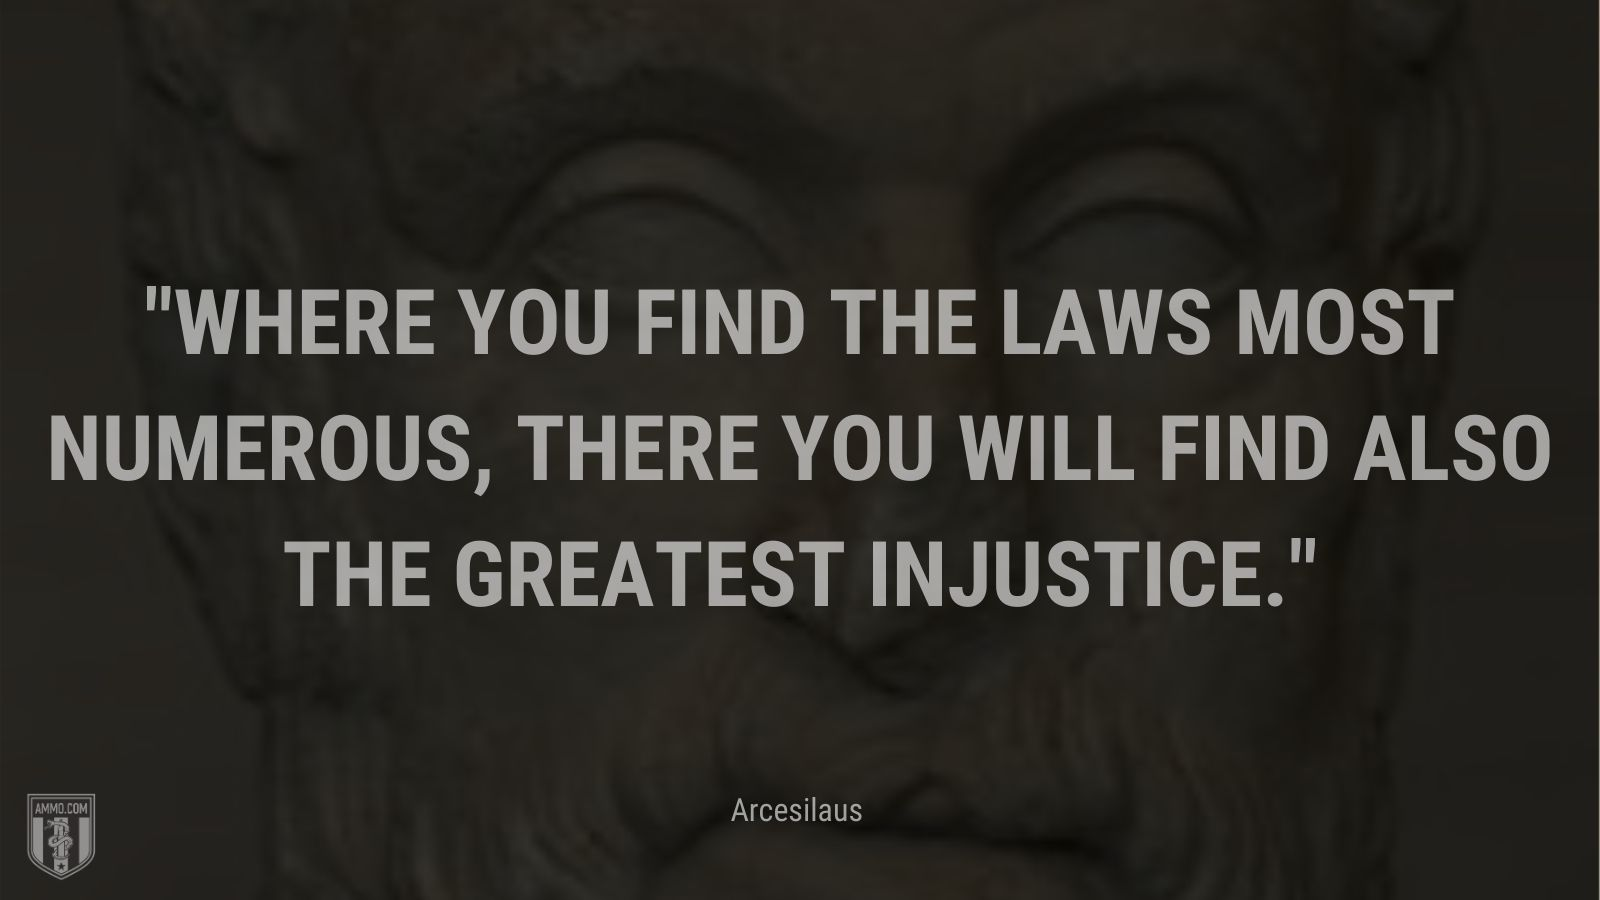 """""""Where you find the laws most numerous, there you will find also the greatest injustice."""" - Arcesilaus"""